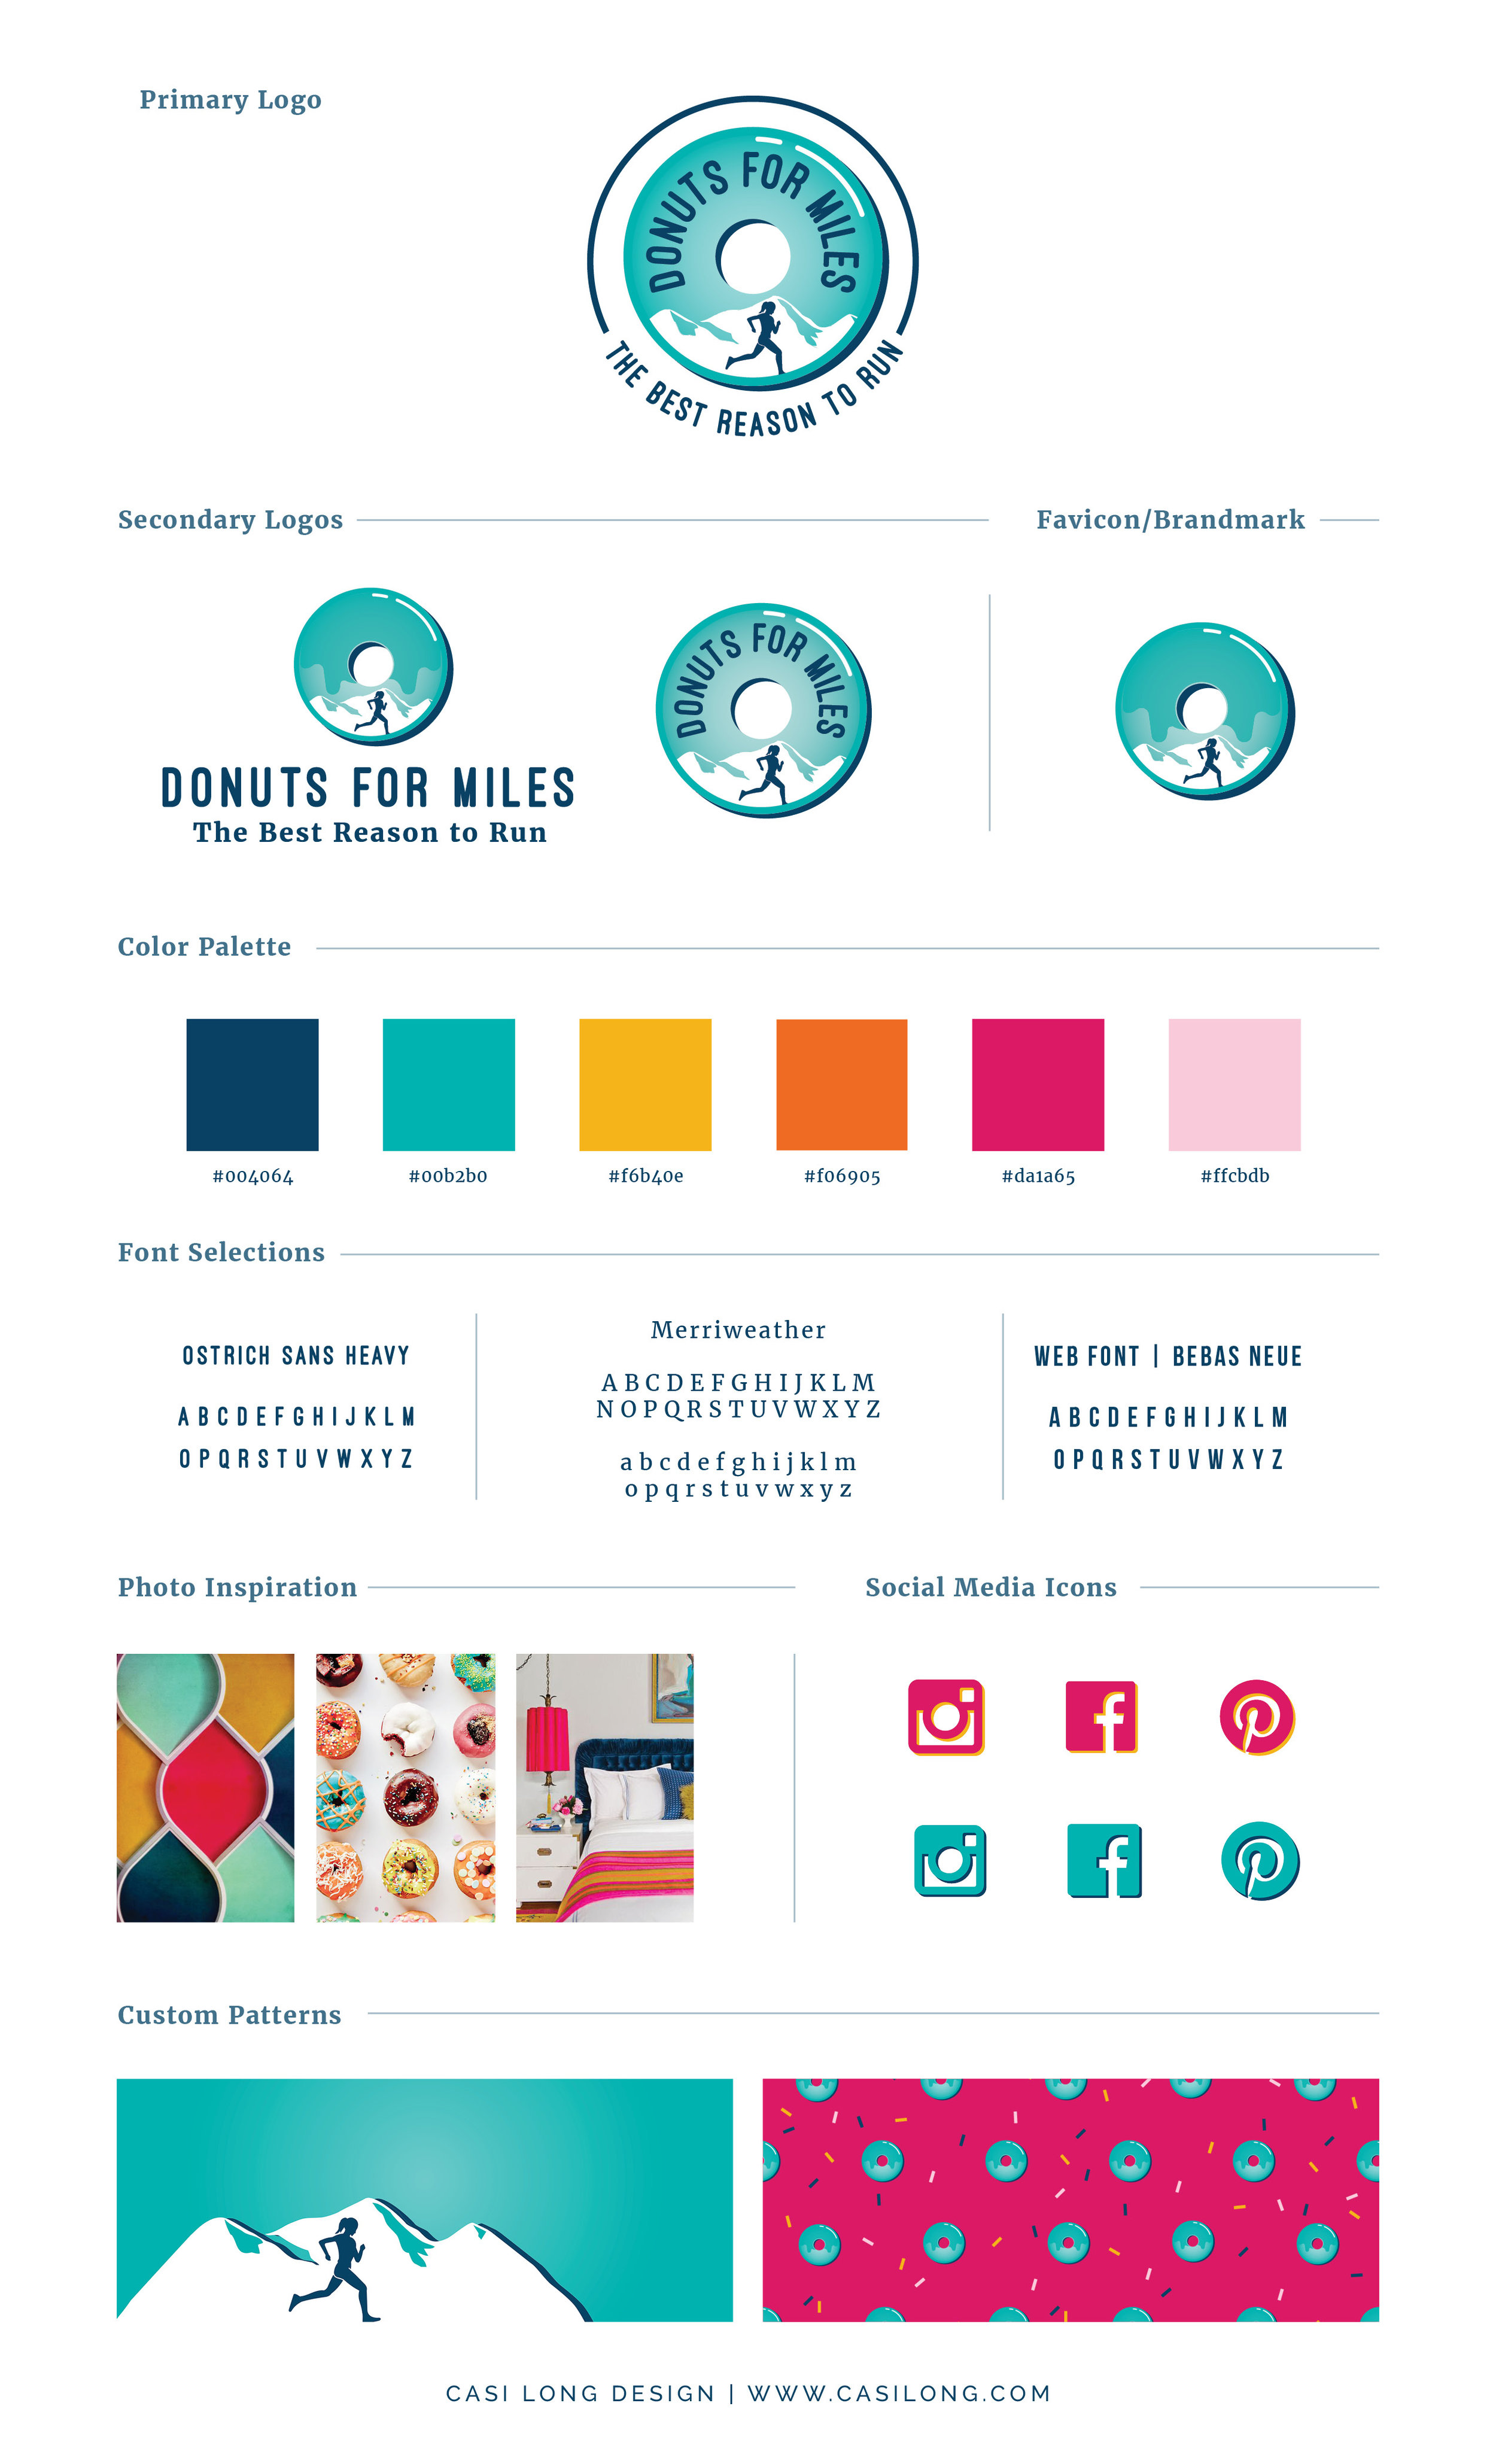 Style Guide for Donuts for Miles | Branding by Casi Long Design | www.casilong.com #casilongdesign